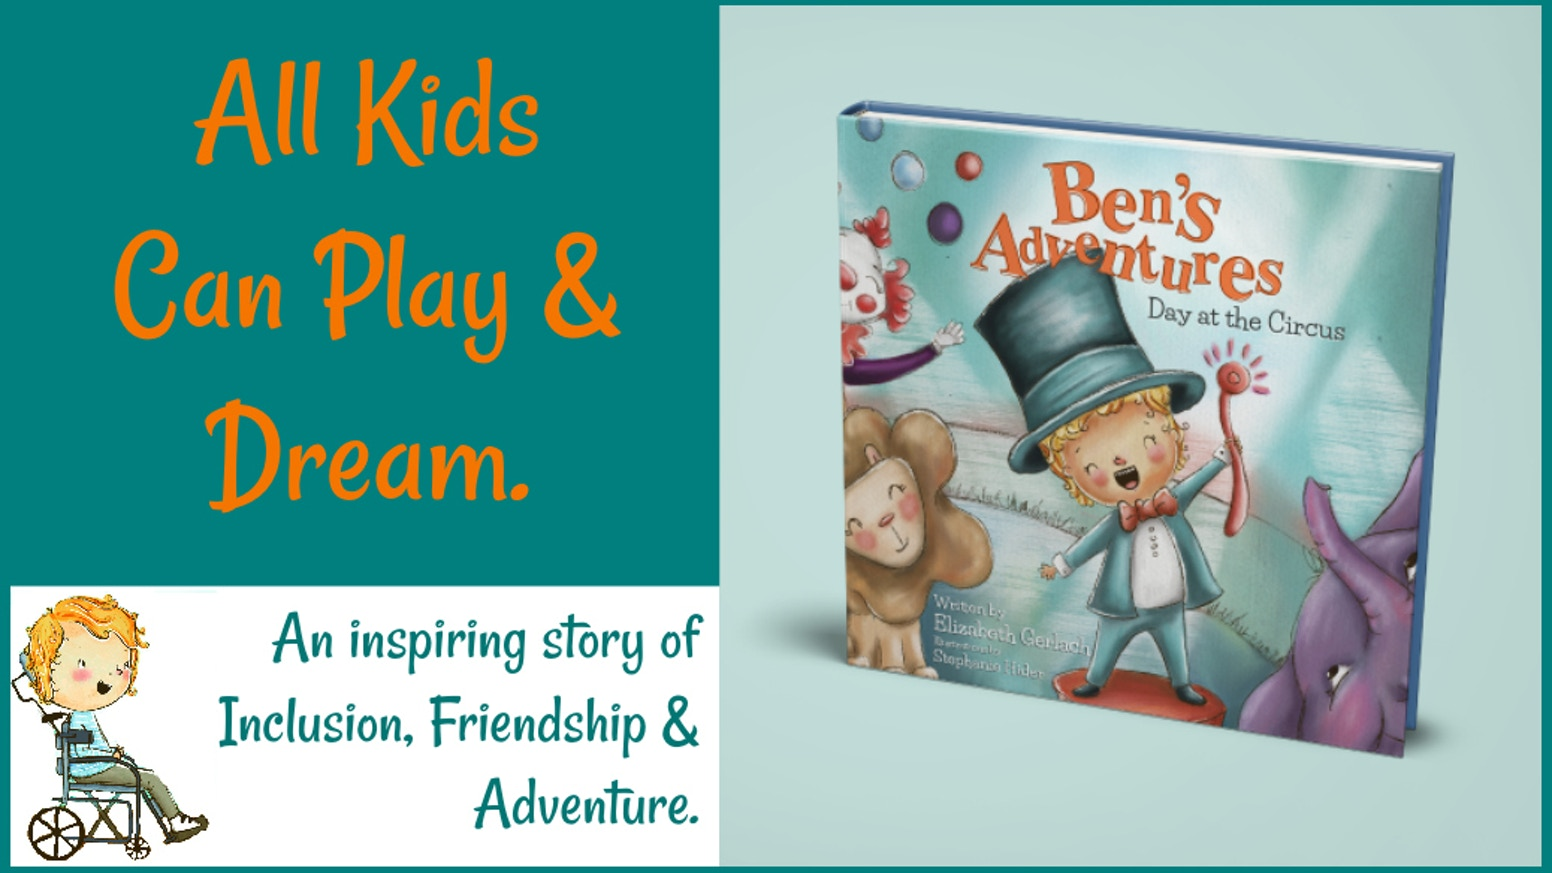 Check out this inspiring story of inclusion and dreams in Under The Big Top! Sweet Ben takes us to the circus in this second book in the Ben's Adventures series.Did you miss the Kickstarter but still want to learn more? Click below to preorder.